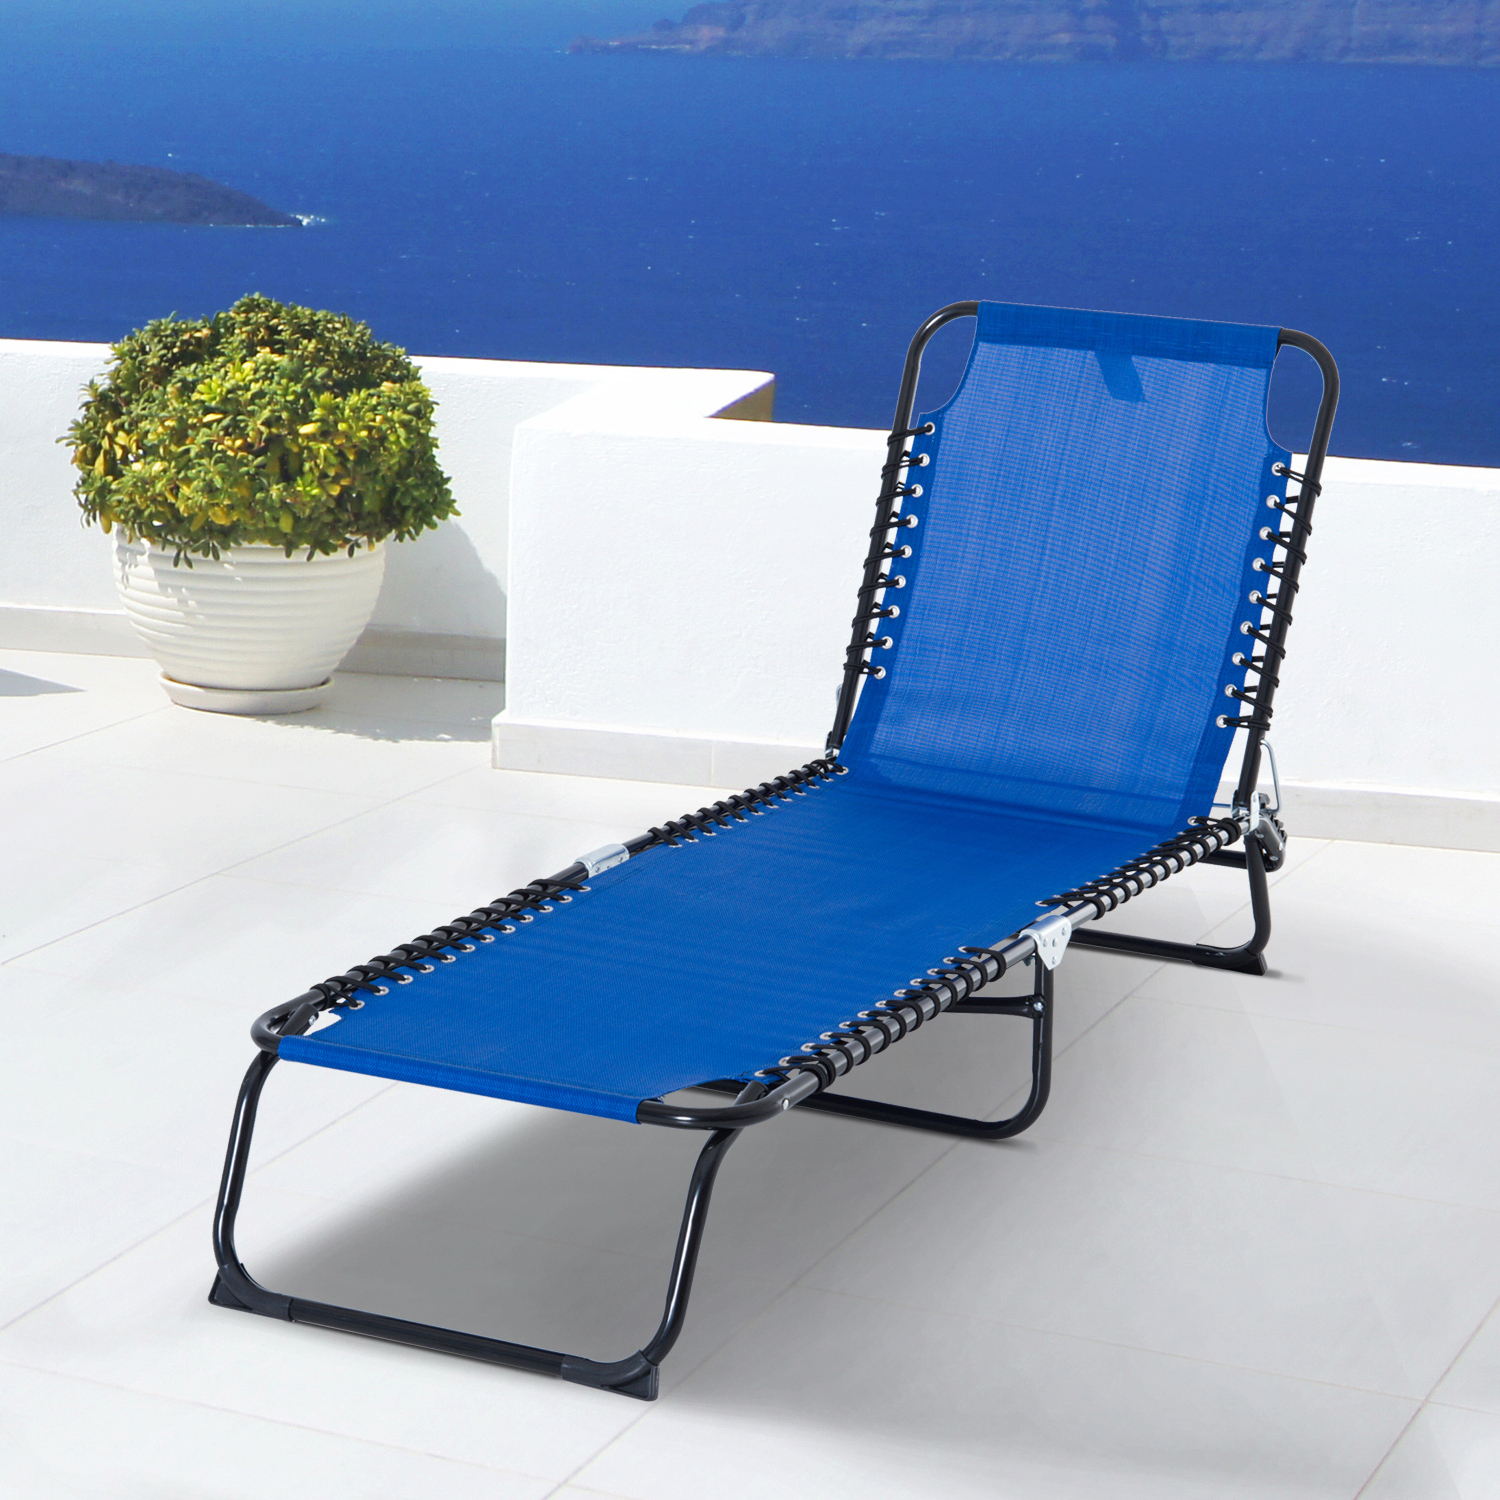 3 Position Portable Reclining Beach Chaise Lounges Inside Current Details About 3 Position Portable Reclining Beach Chaise Lounge Adjustable Sleeping Bed (View 6 of 25)